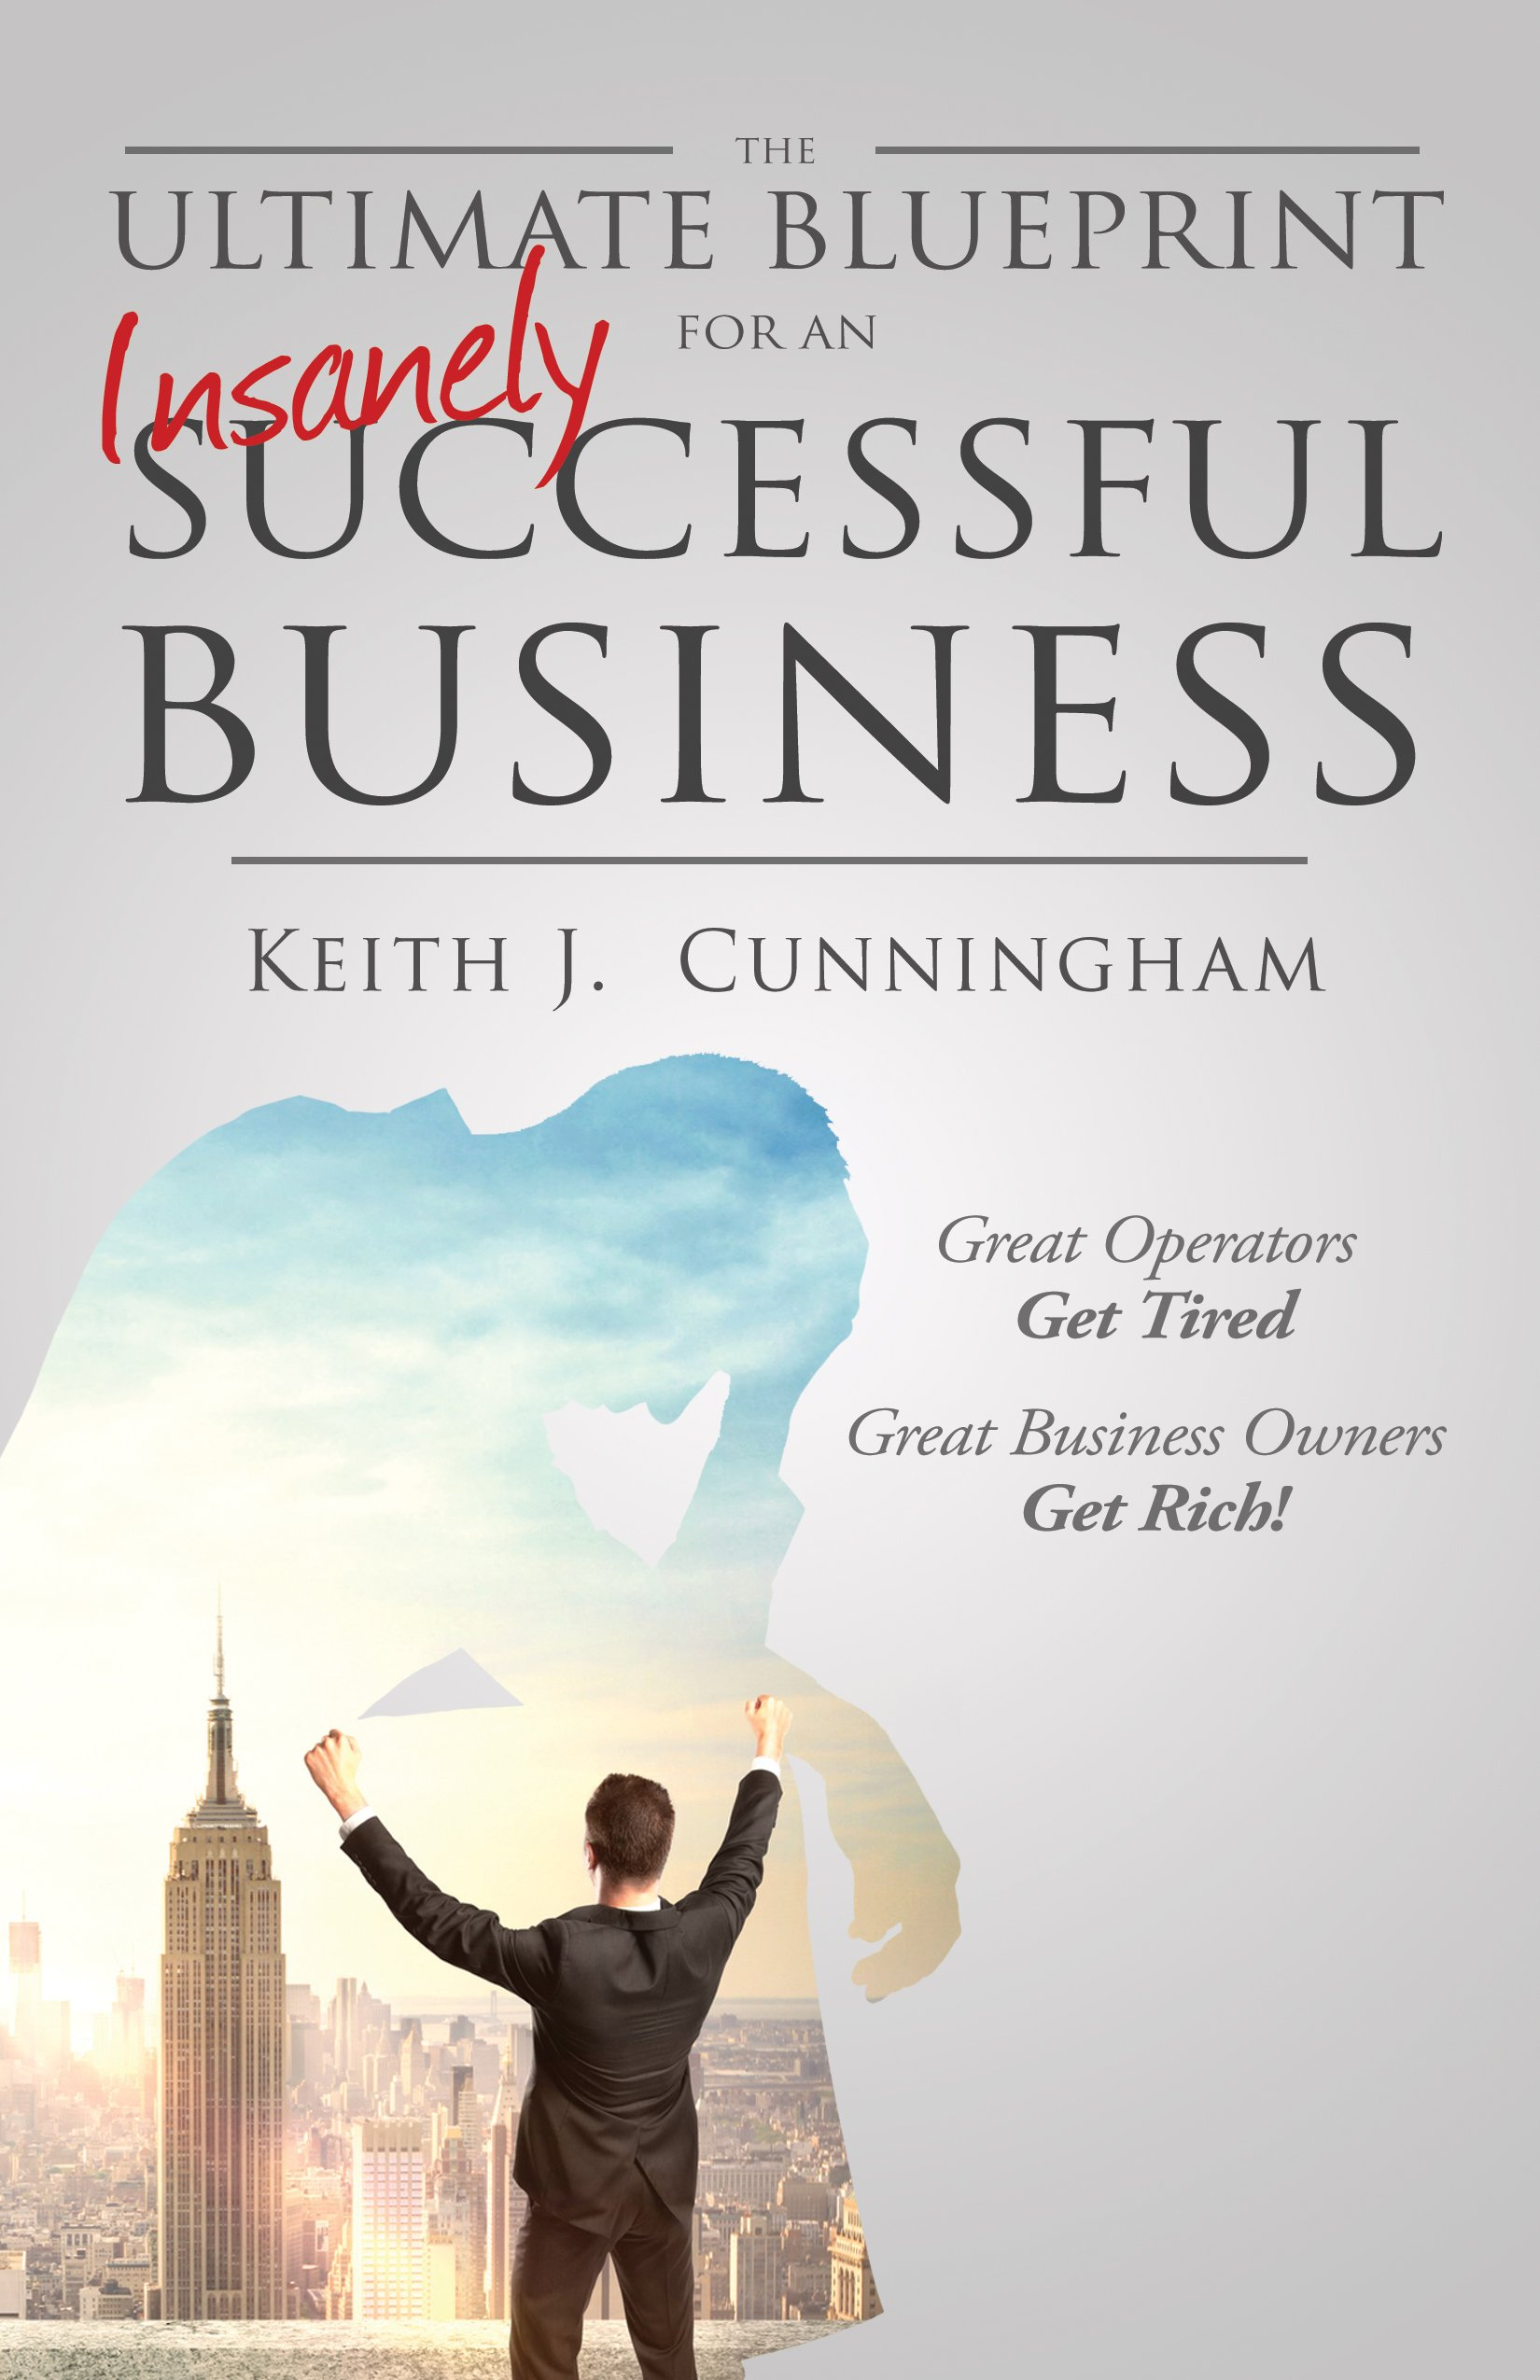 The ultimate blueprint for an insanely successful business keith j the ultimate blueprint for an insanely successful business keith j cunningham 9780984659203 amazon books malvernweather Images